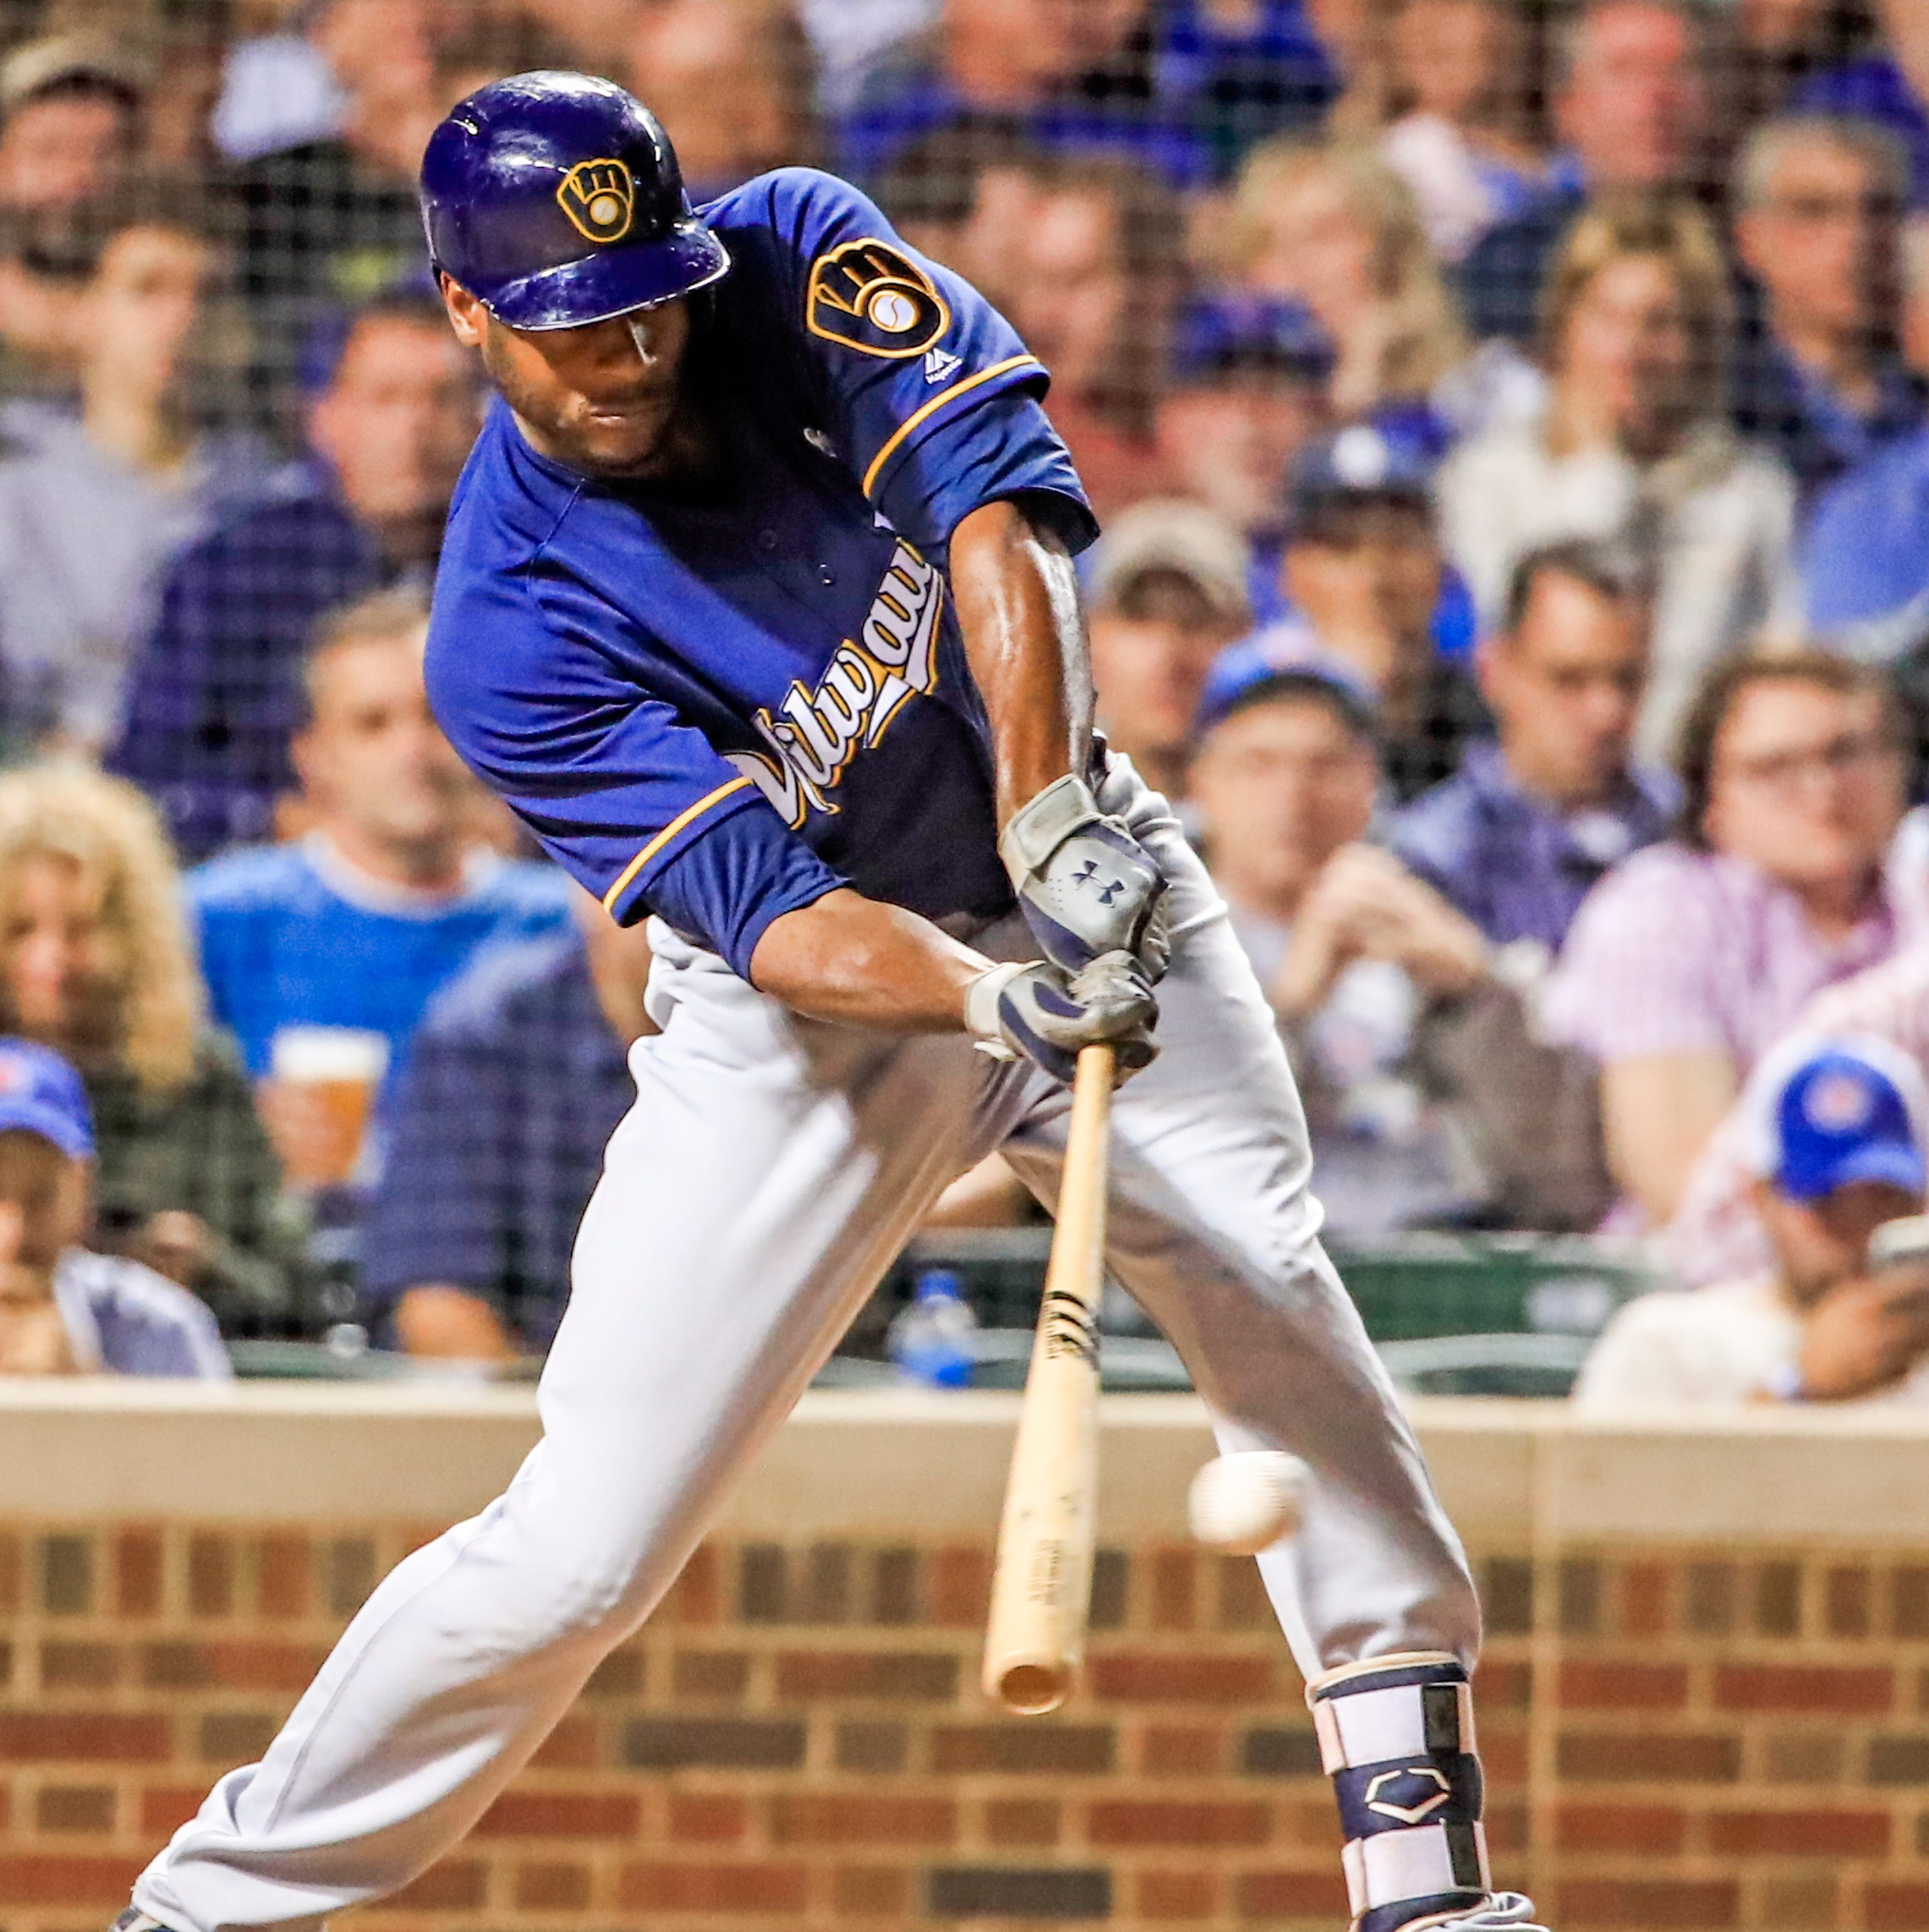 Notes: Lorenzo Cain still sidelined as Brewers begin crucial road trip